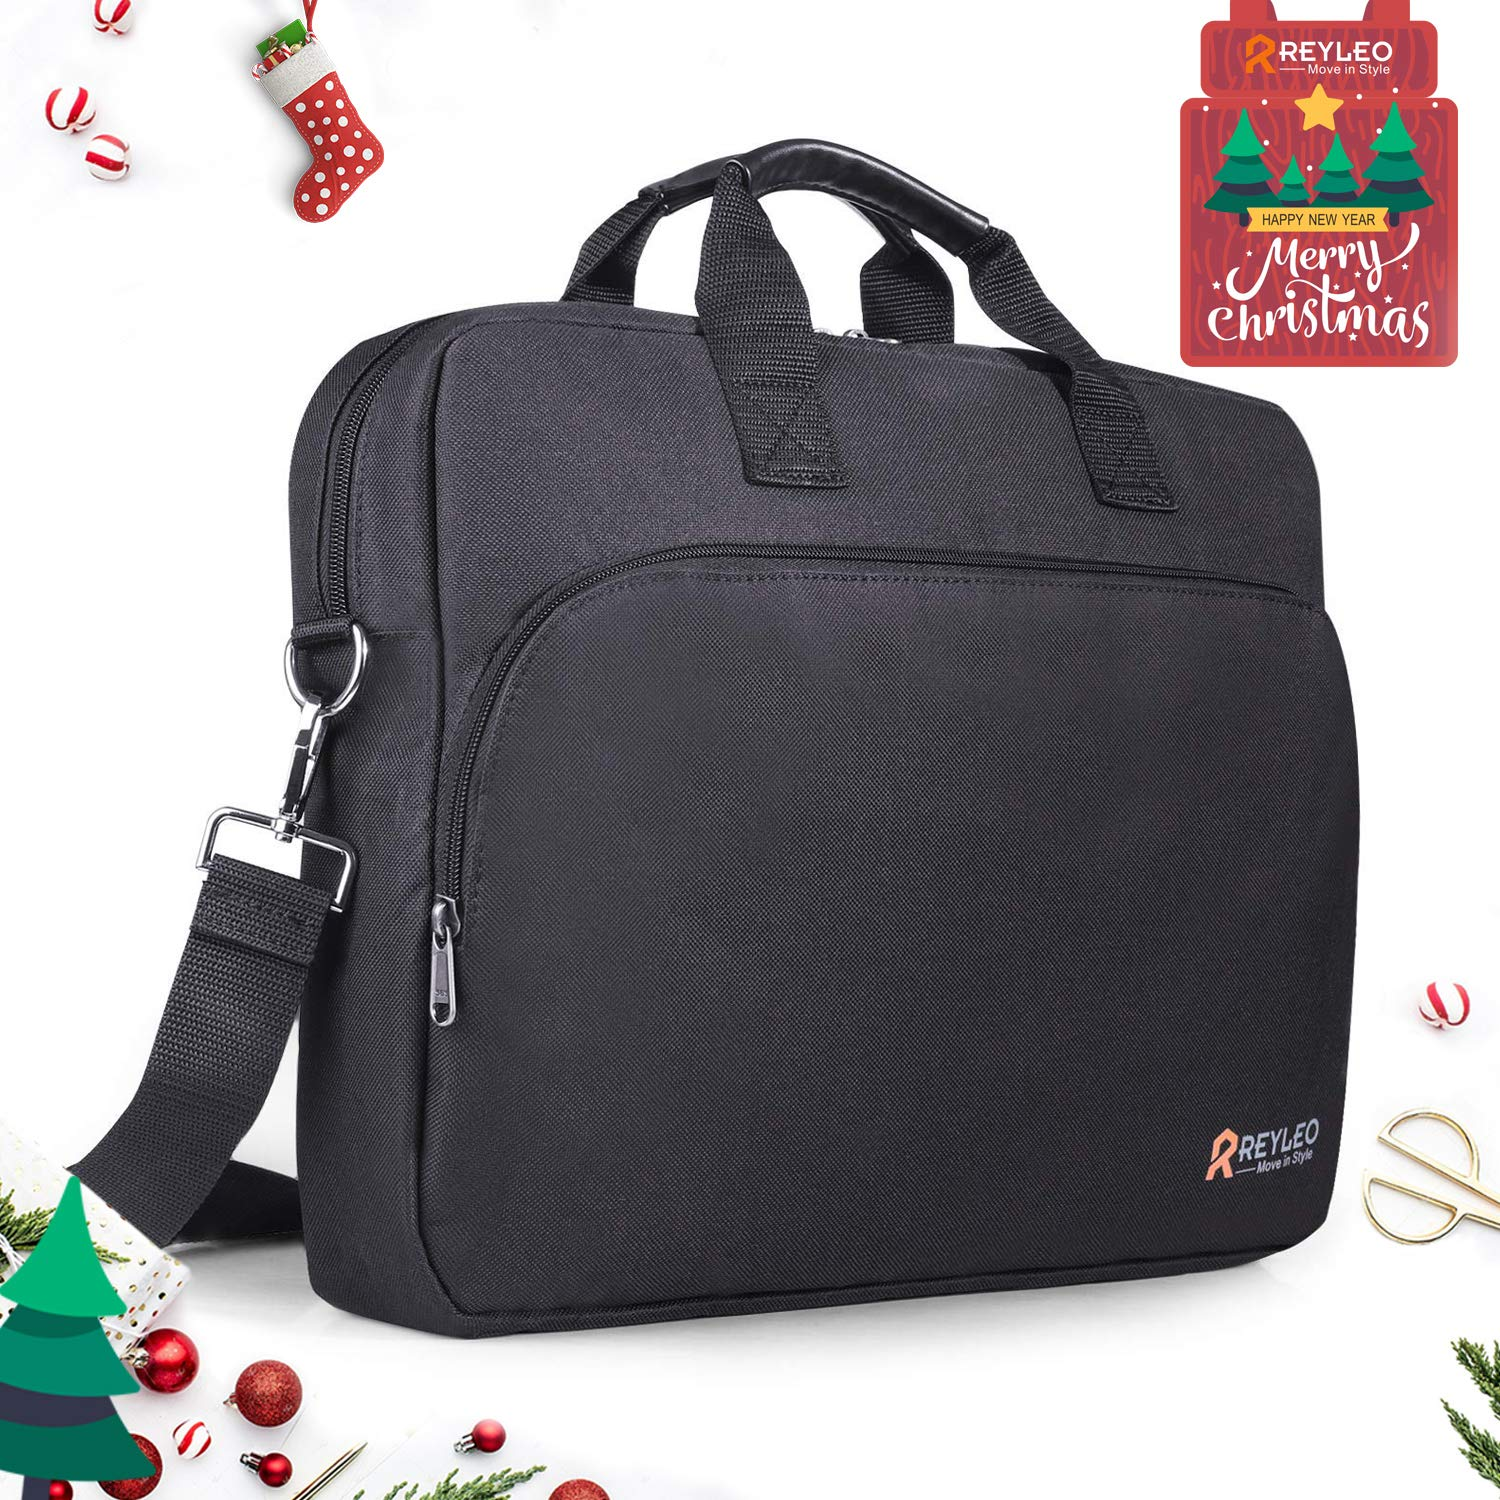 REYLEO 15.6 Inch Laptop Bag Travel Briefcase with Luggage Strap Water Resistant Shoulder Bag Business Messenger Briefcases for Men and Women Fits Laptop Computer Tablet LCB1B